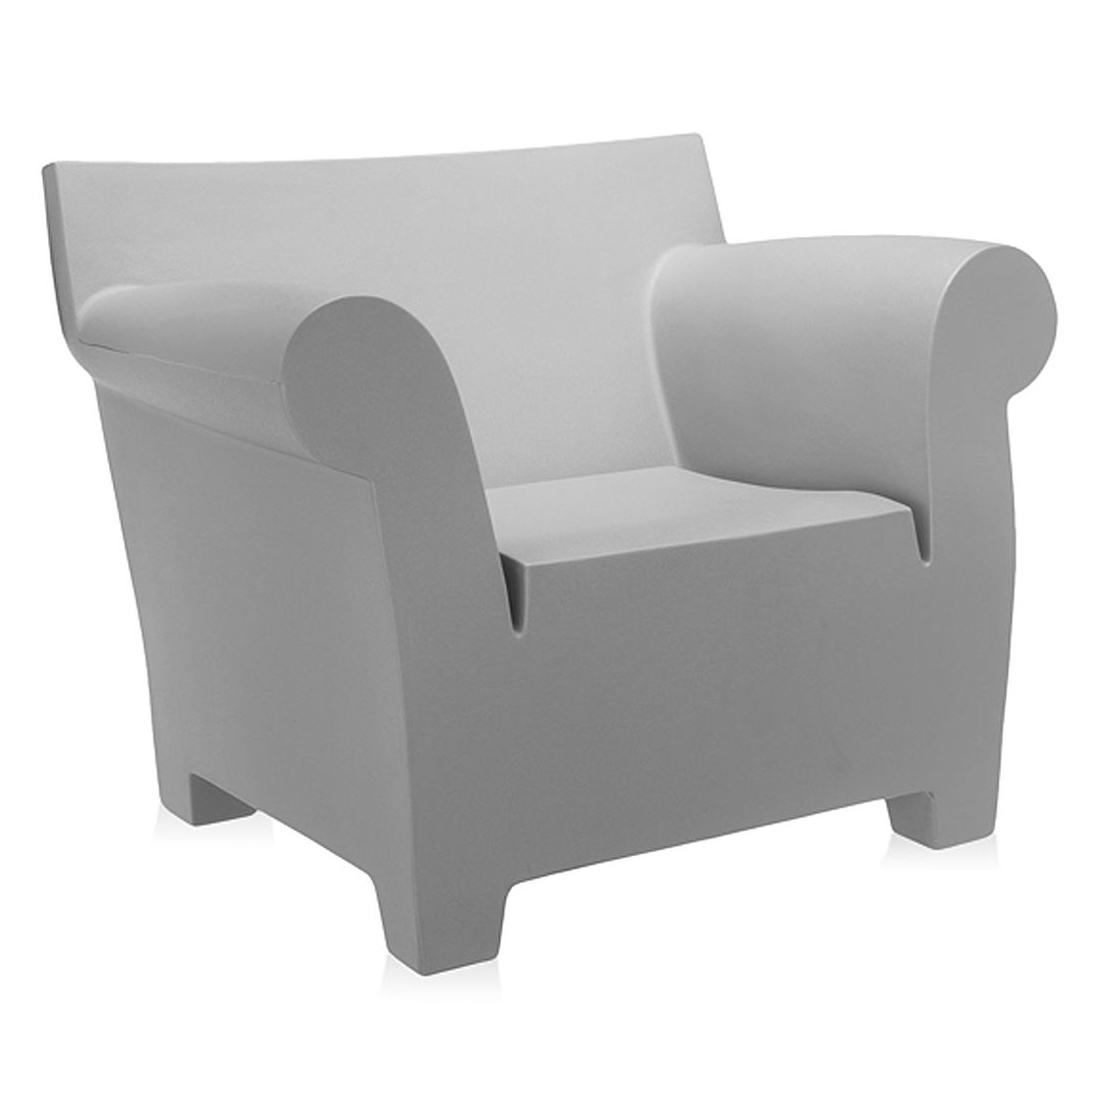 Kartell bubble club armchair sale by philippe starck